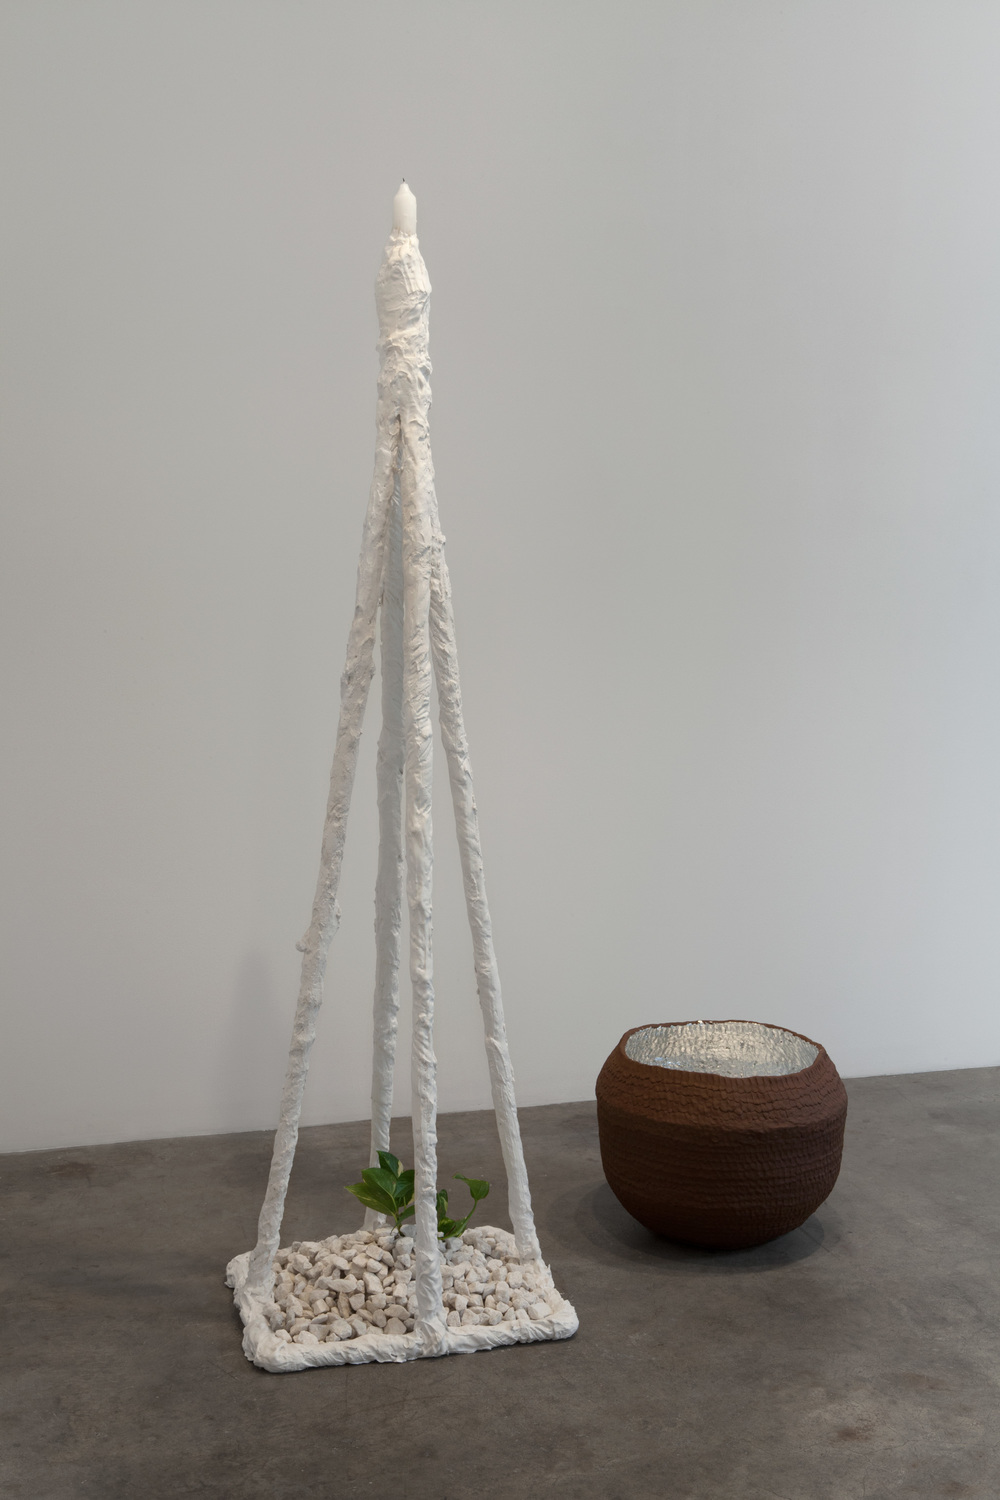 Kathryn O'Halloran,  Basic Connecting Station,  2015, plaster, candle, rocks, plant, stoneware, aluminum